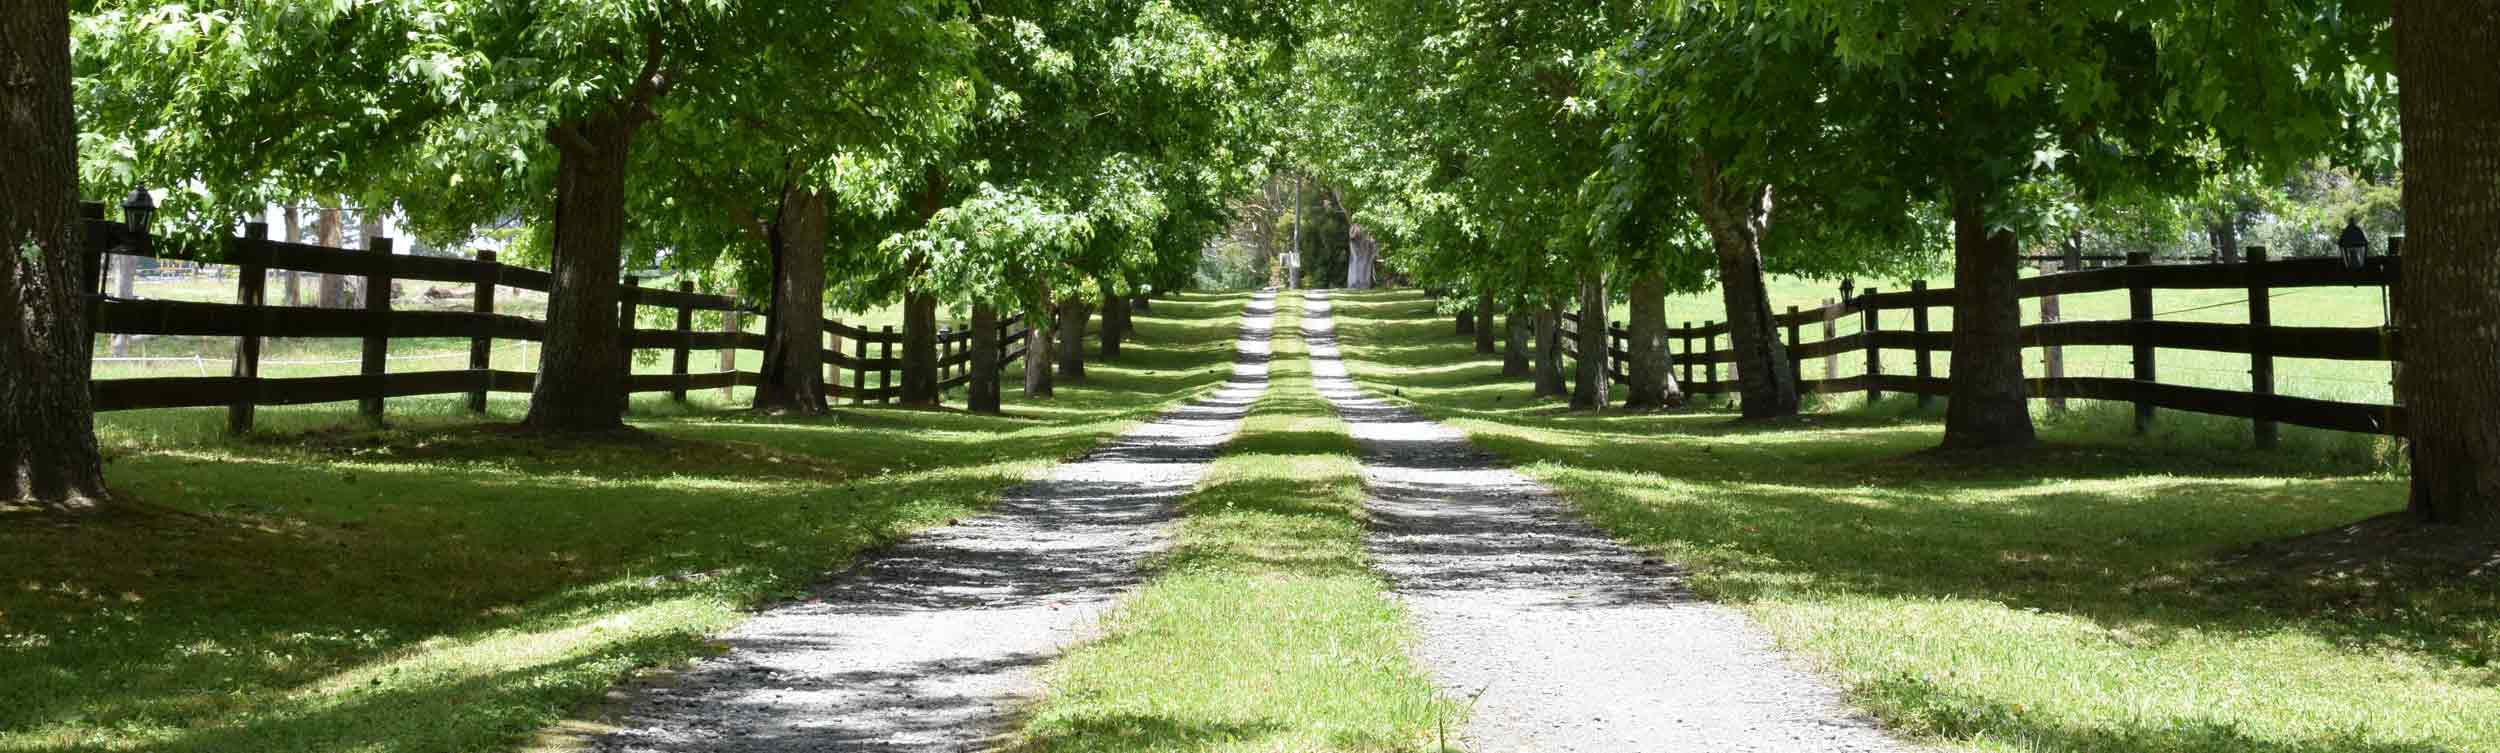 Fence along a country driveway by Finer Lawn & Landscaping